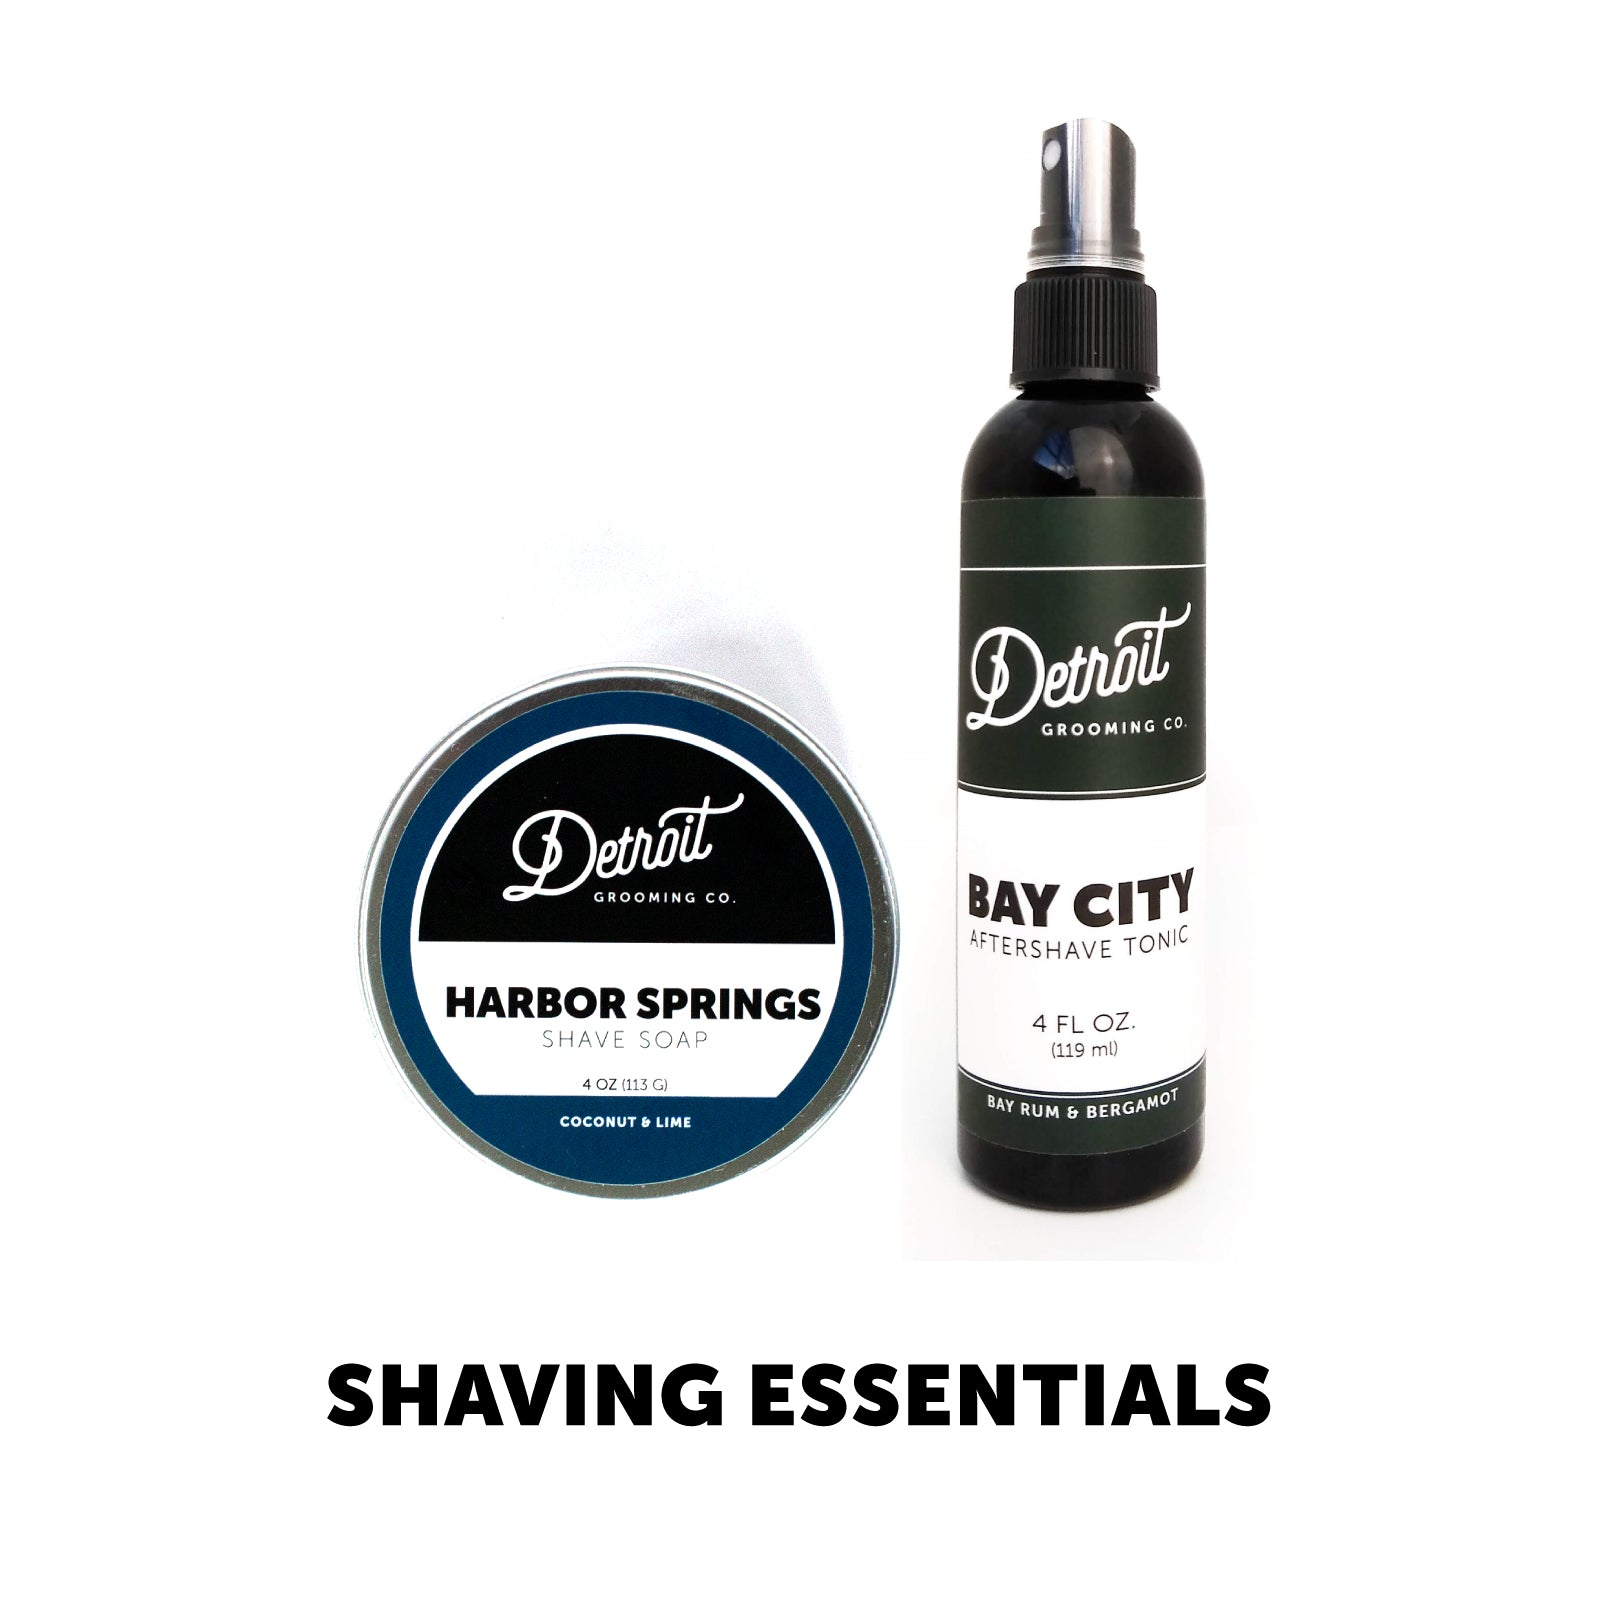 Shaving Soaps and Creams for Men